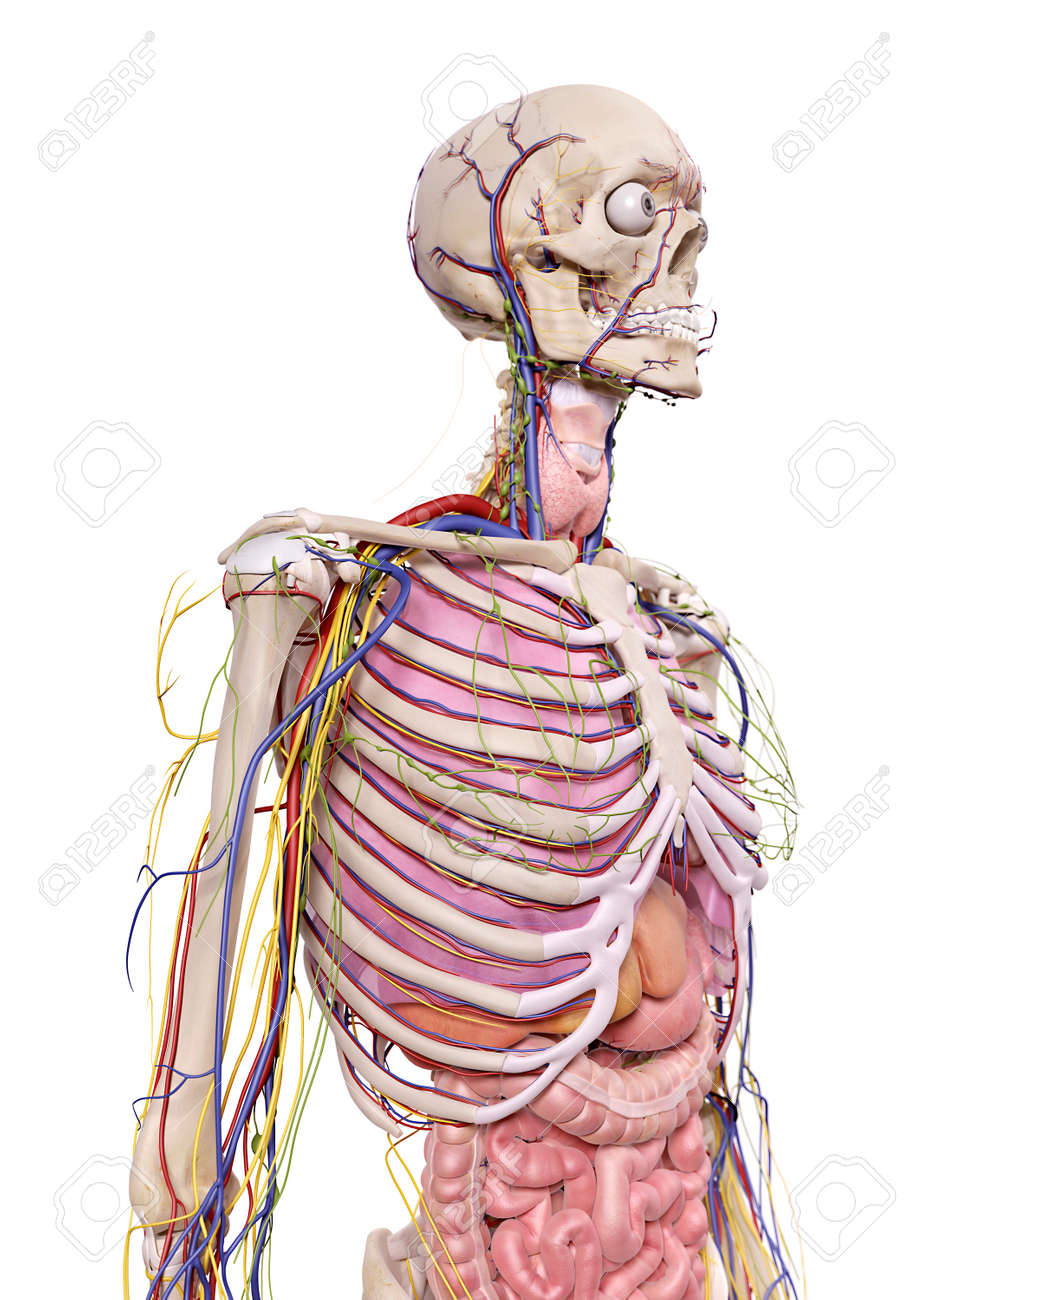 Medical Accurate Illustration Of The Thorax Anatomy Stock Photo